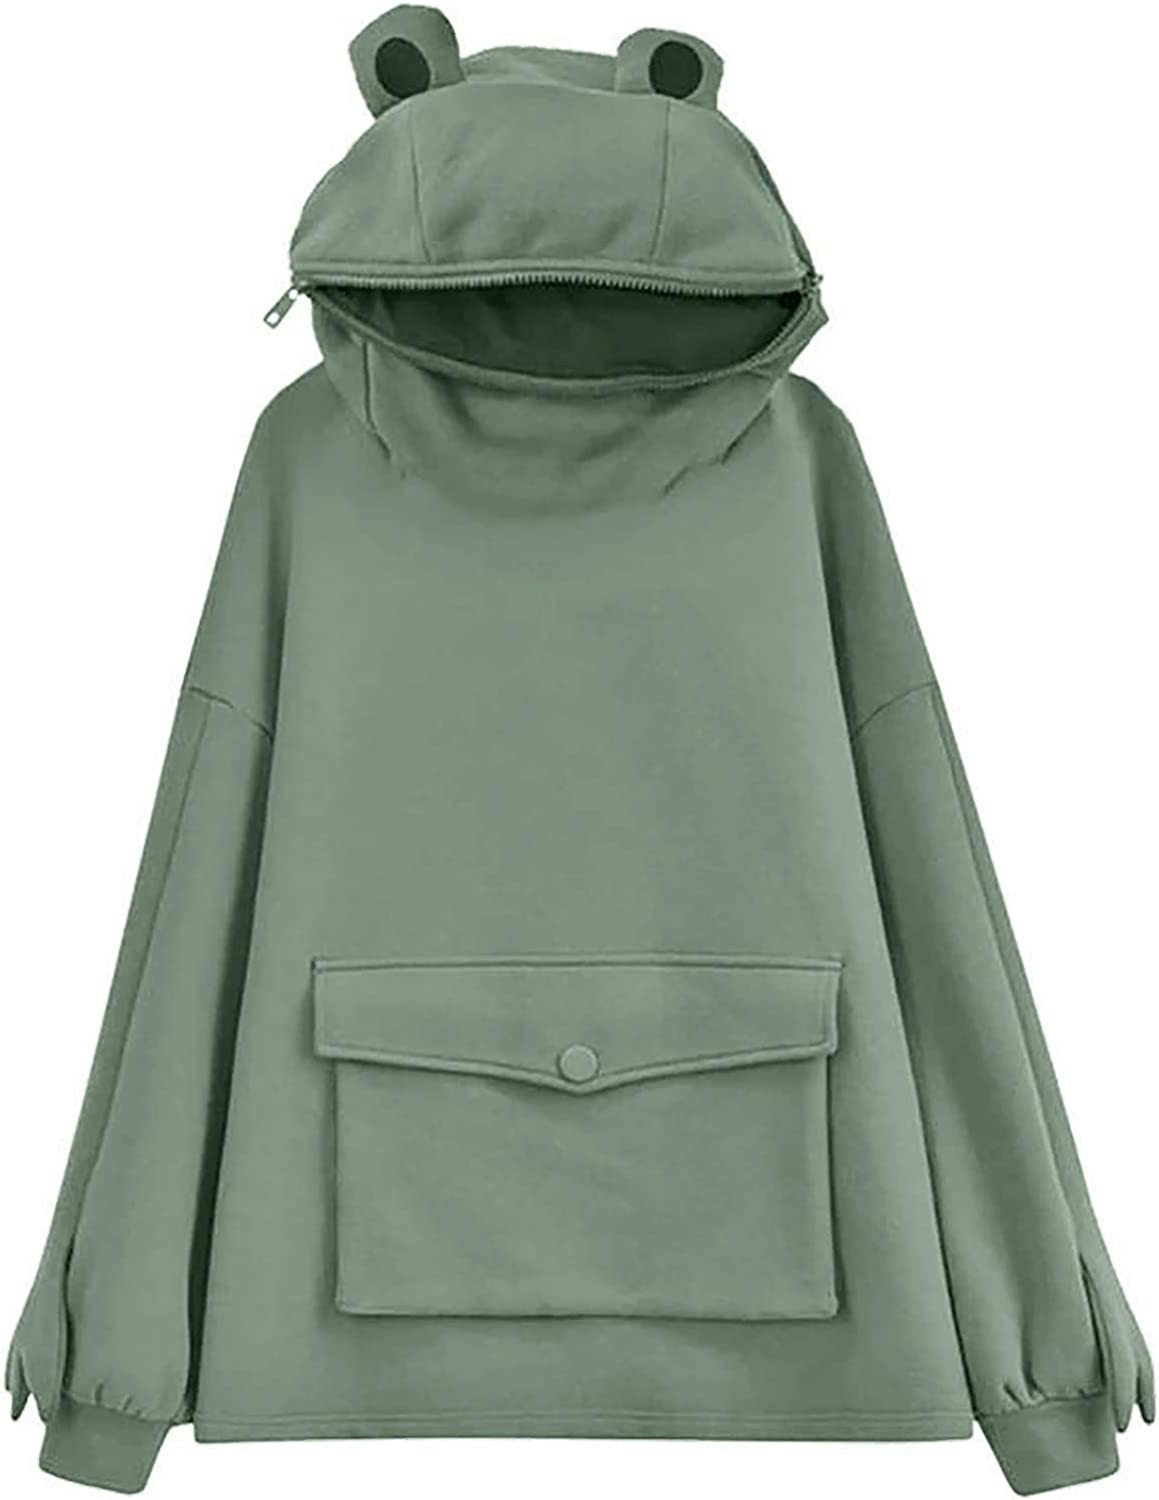 Womens//Girls Cute Frog Hoodie Pullover Zipper Mouth Hooded Sweatshirts with Large Front Pocket